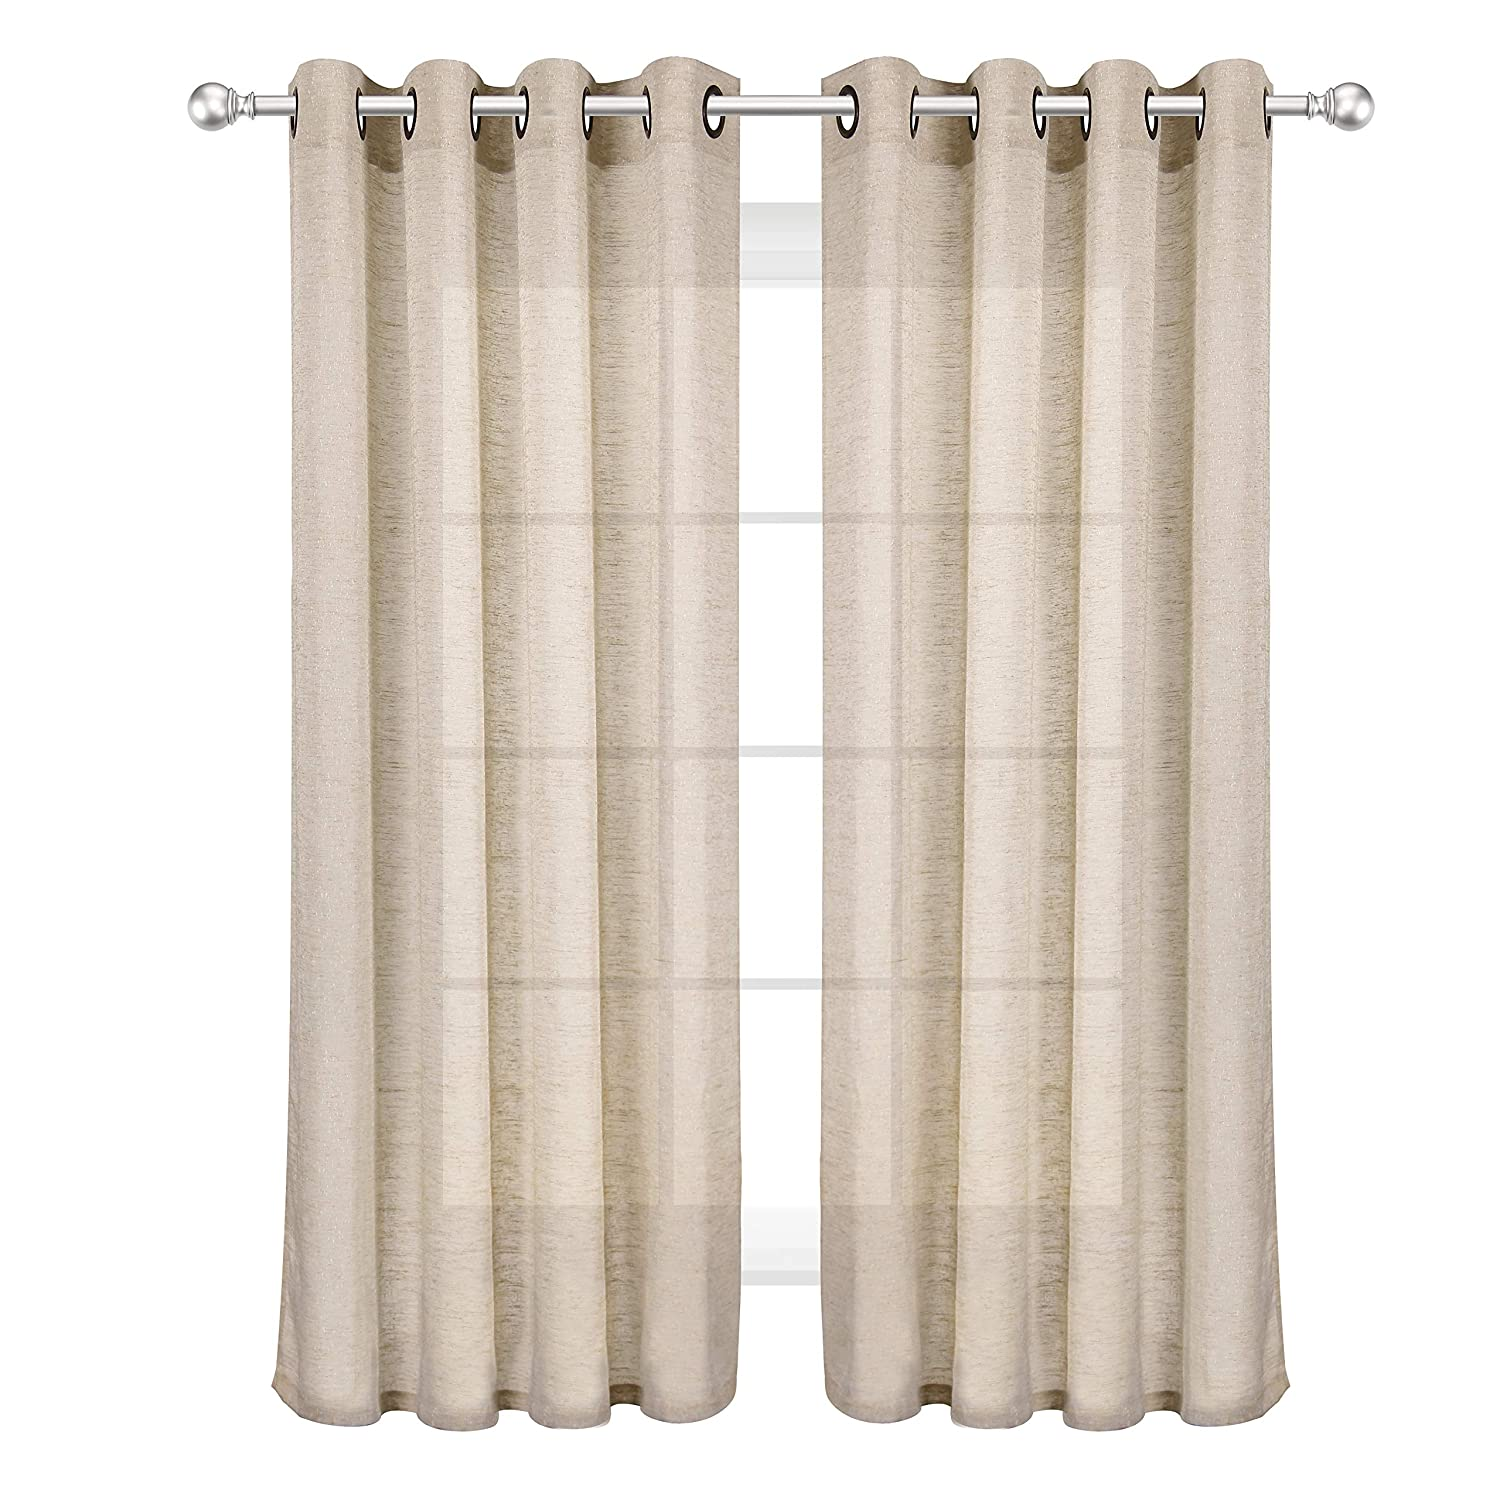 VOILYBIRD Feliz 2 Pack Short Sheer Curtains for Kitchen Window 45 Inch Length Linen Textured Panels for Bathroom Dual Rod Pockets (Natural, W52 x L45, 1 Pair)